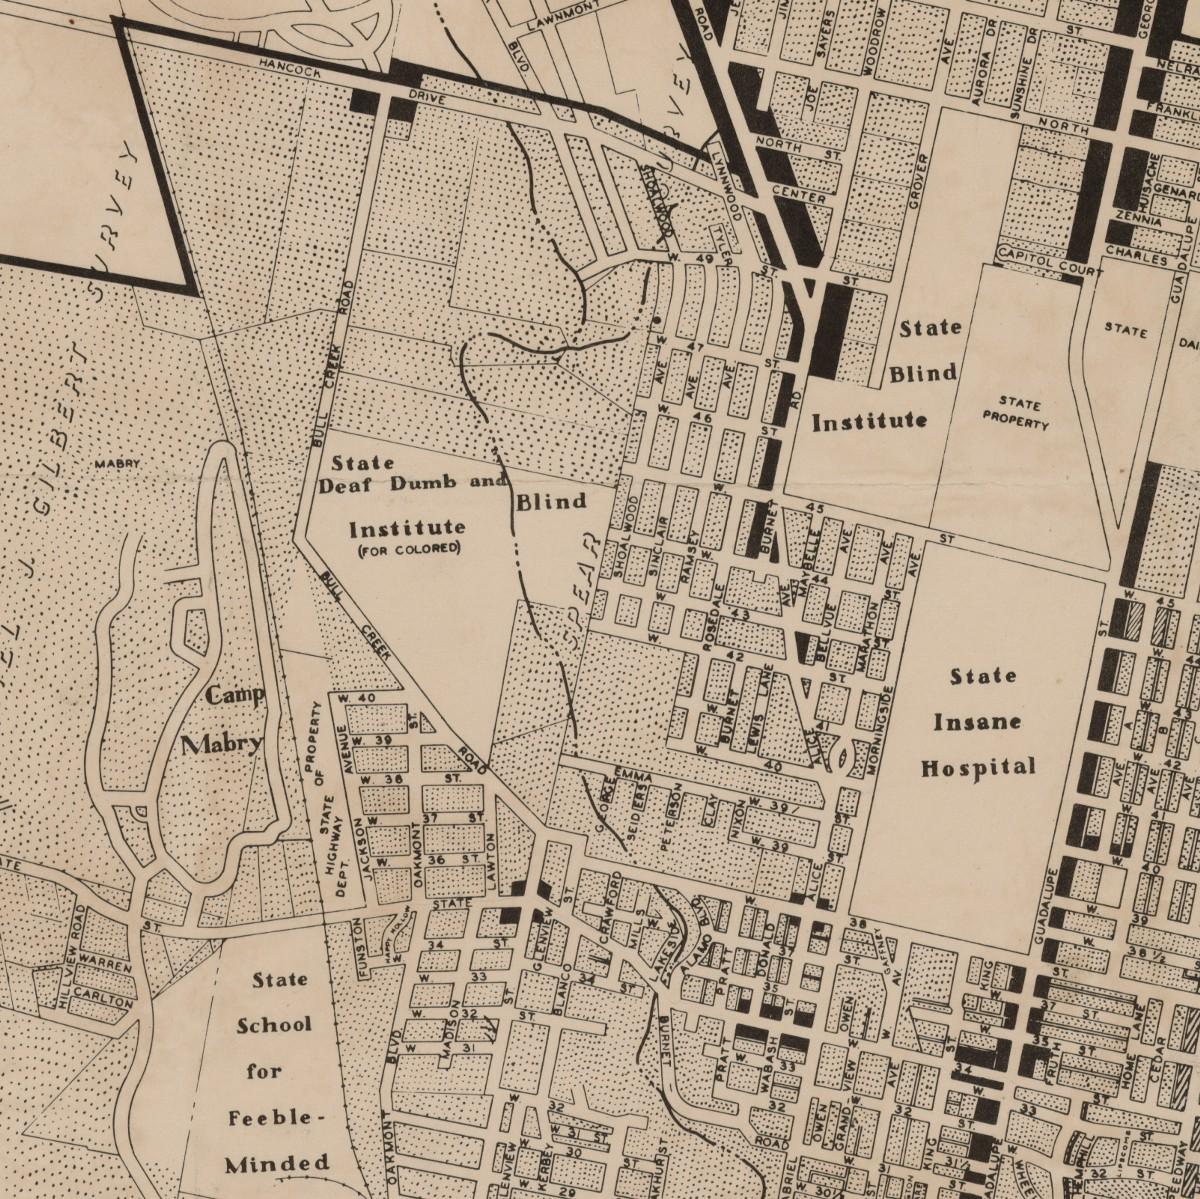 City of Austin Texas Use District Map 1939 By Austin Chamber of